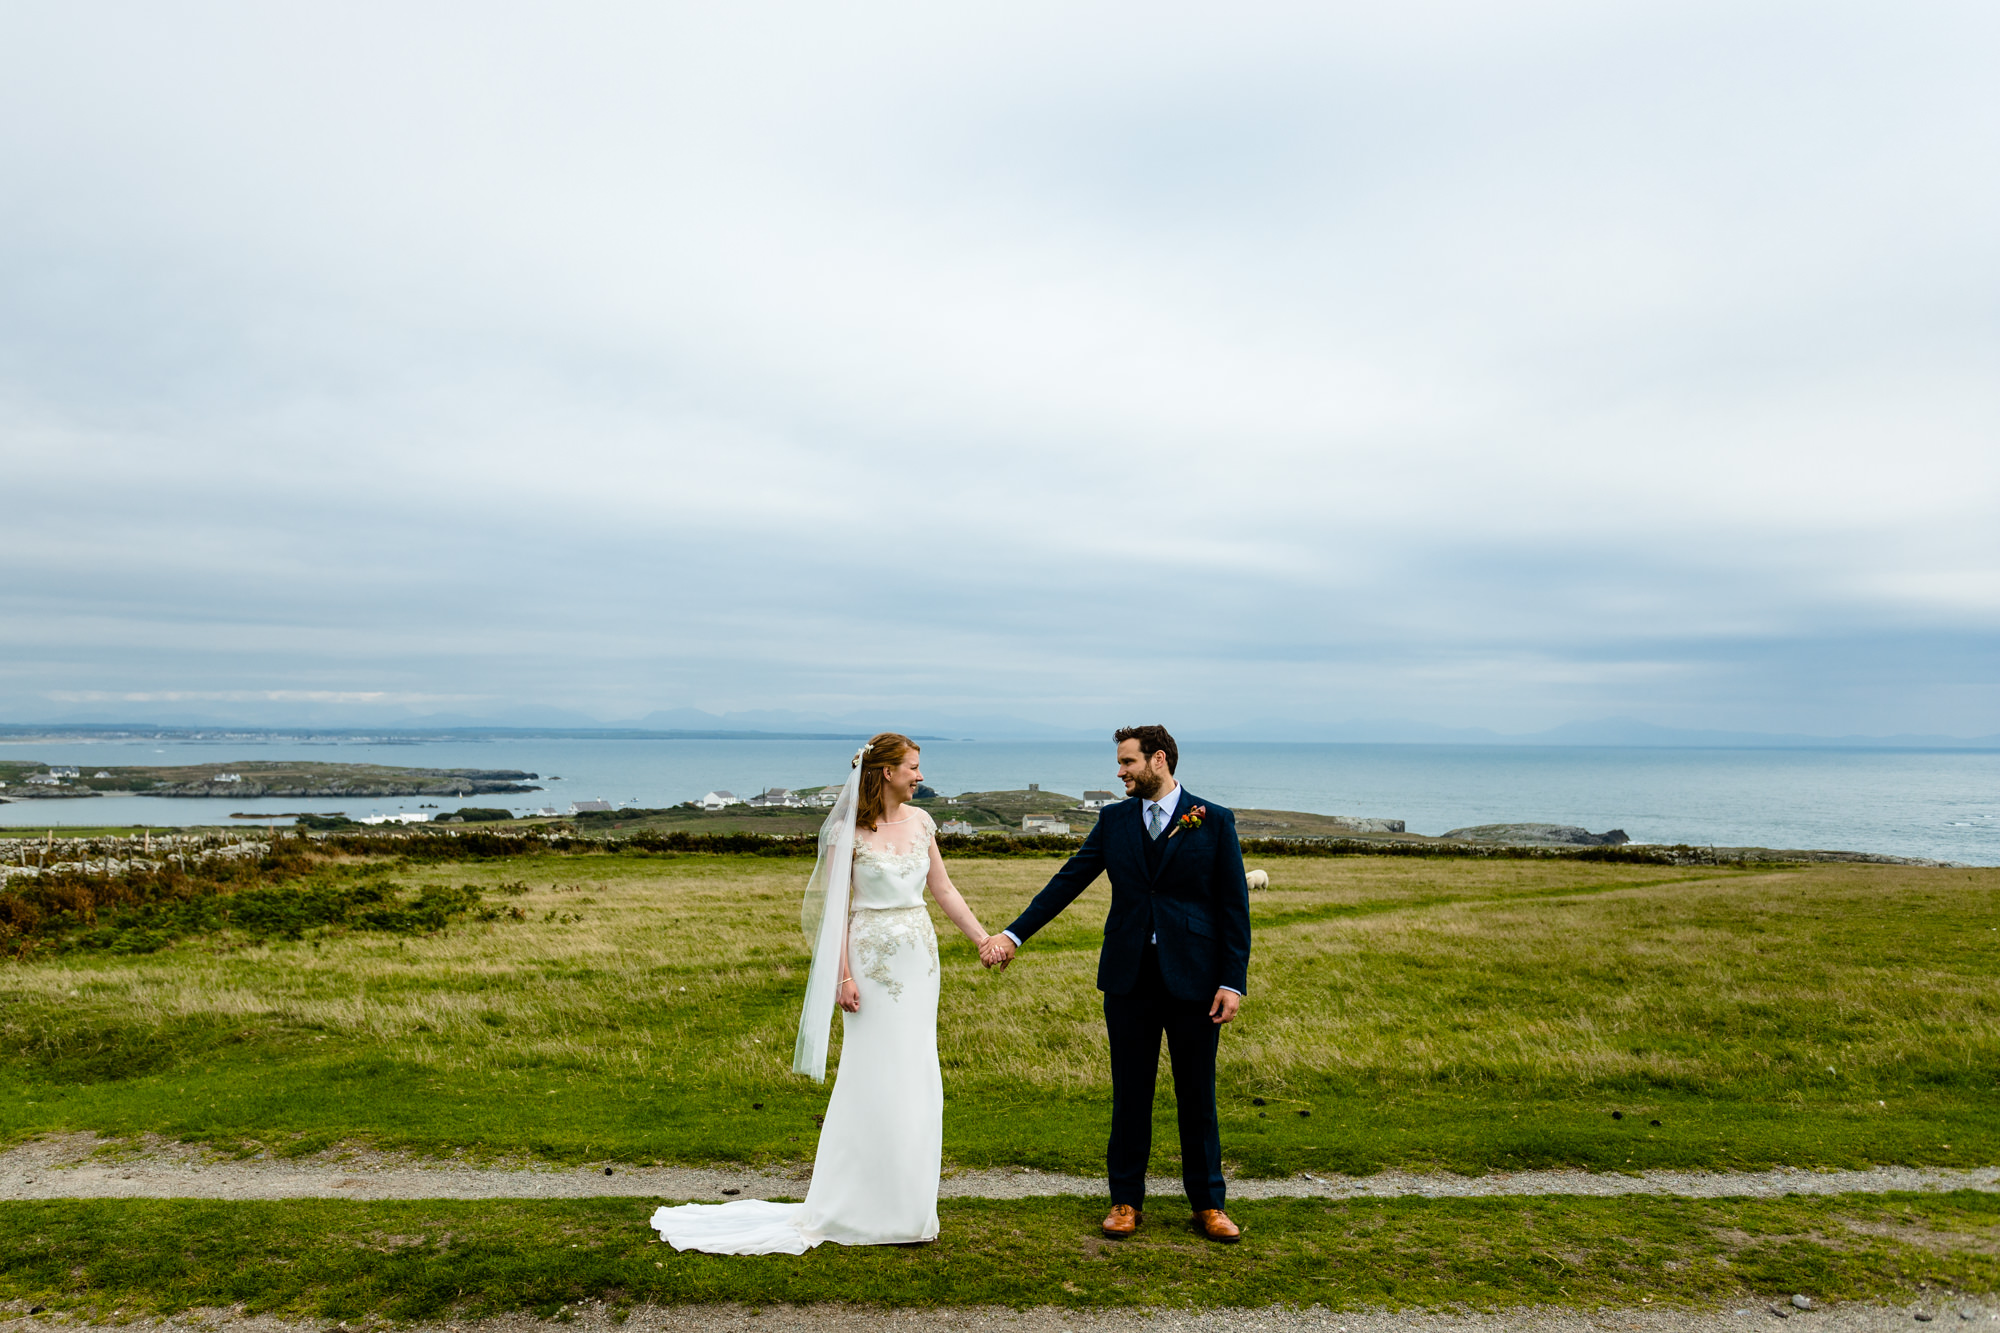 STEF & SIMON - Tipi in Rhyoscolyn, Anglesey